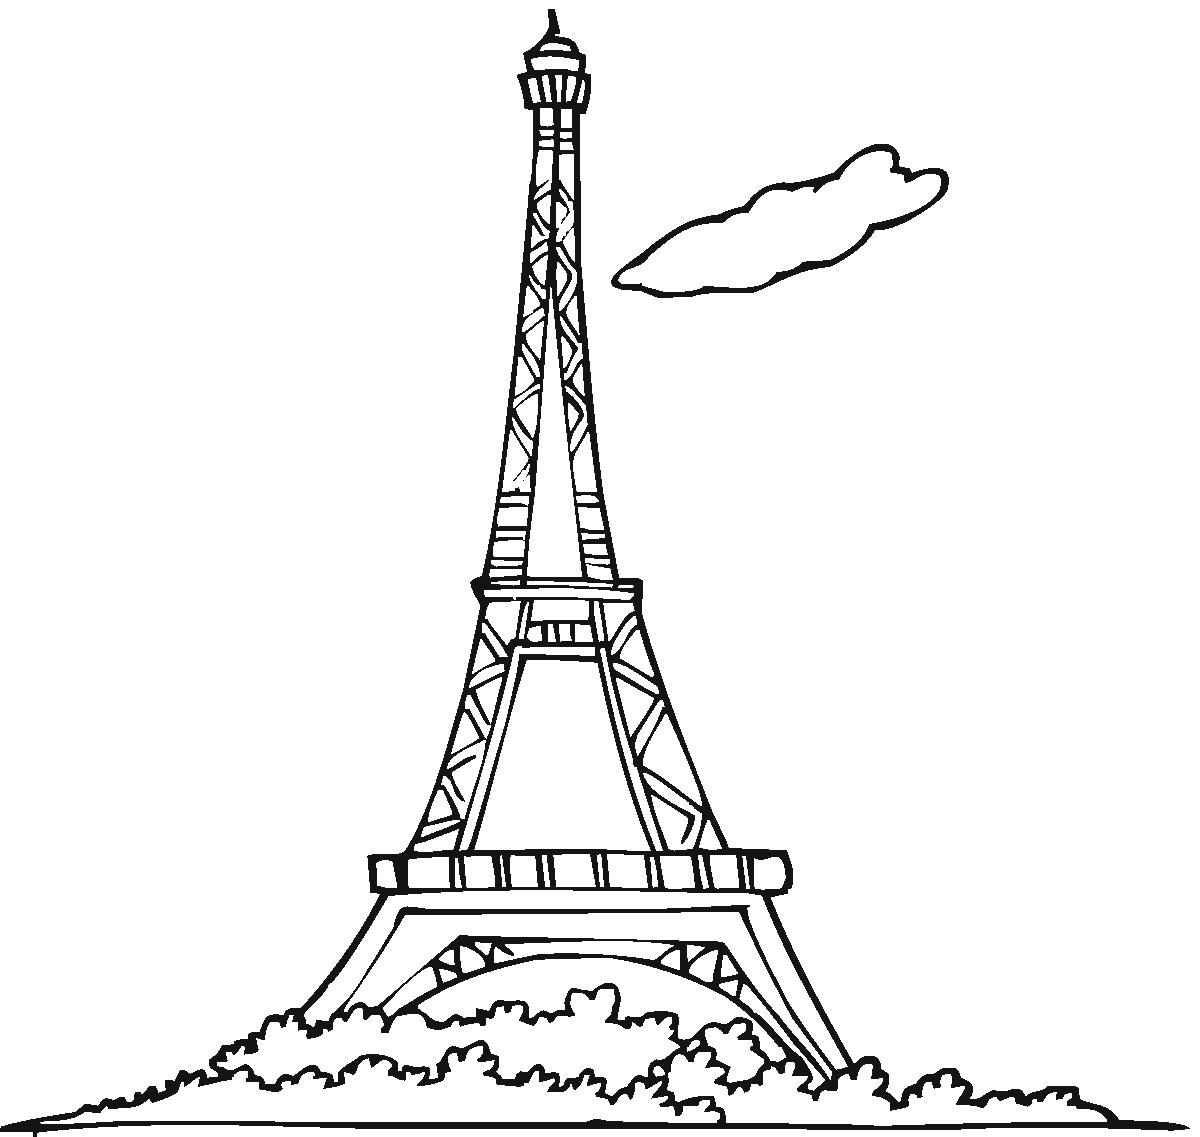 It's just a picture of Old Fashioned Eiffel Tower Coloring Pages